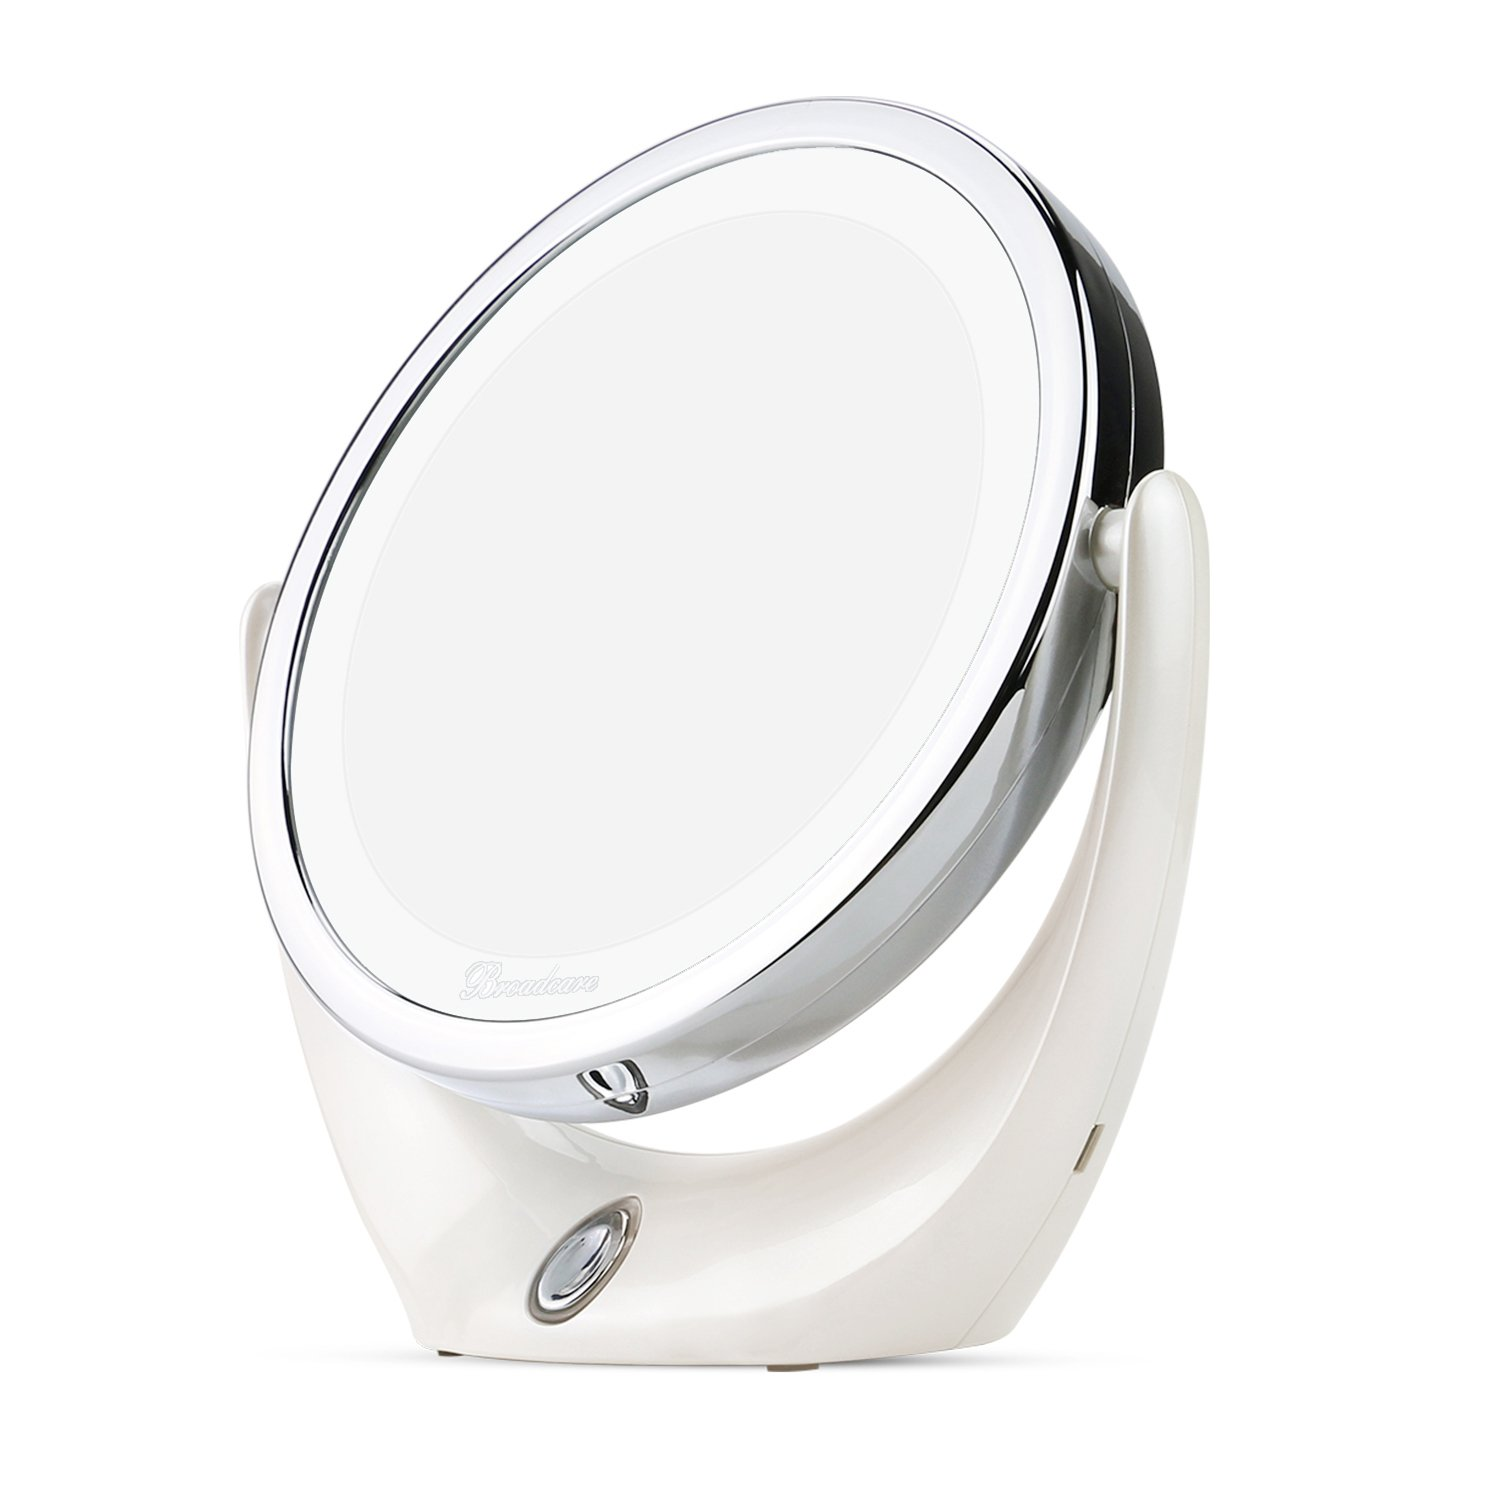 Magnifying Vanity Mirror with Light, BROADCARE LED Lighted Makeup Mirror with 1x/5x Magnification for Travel